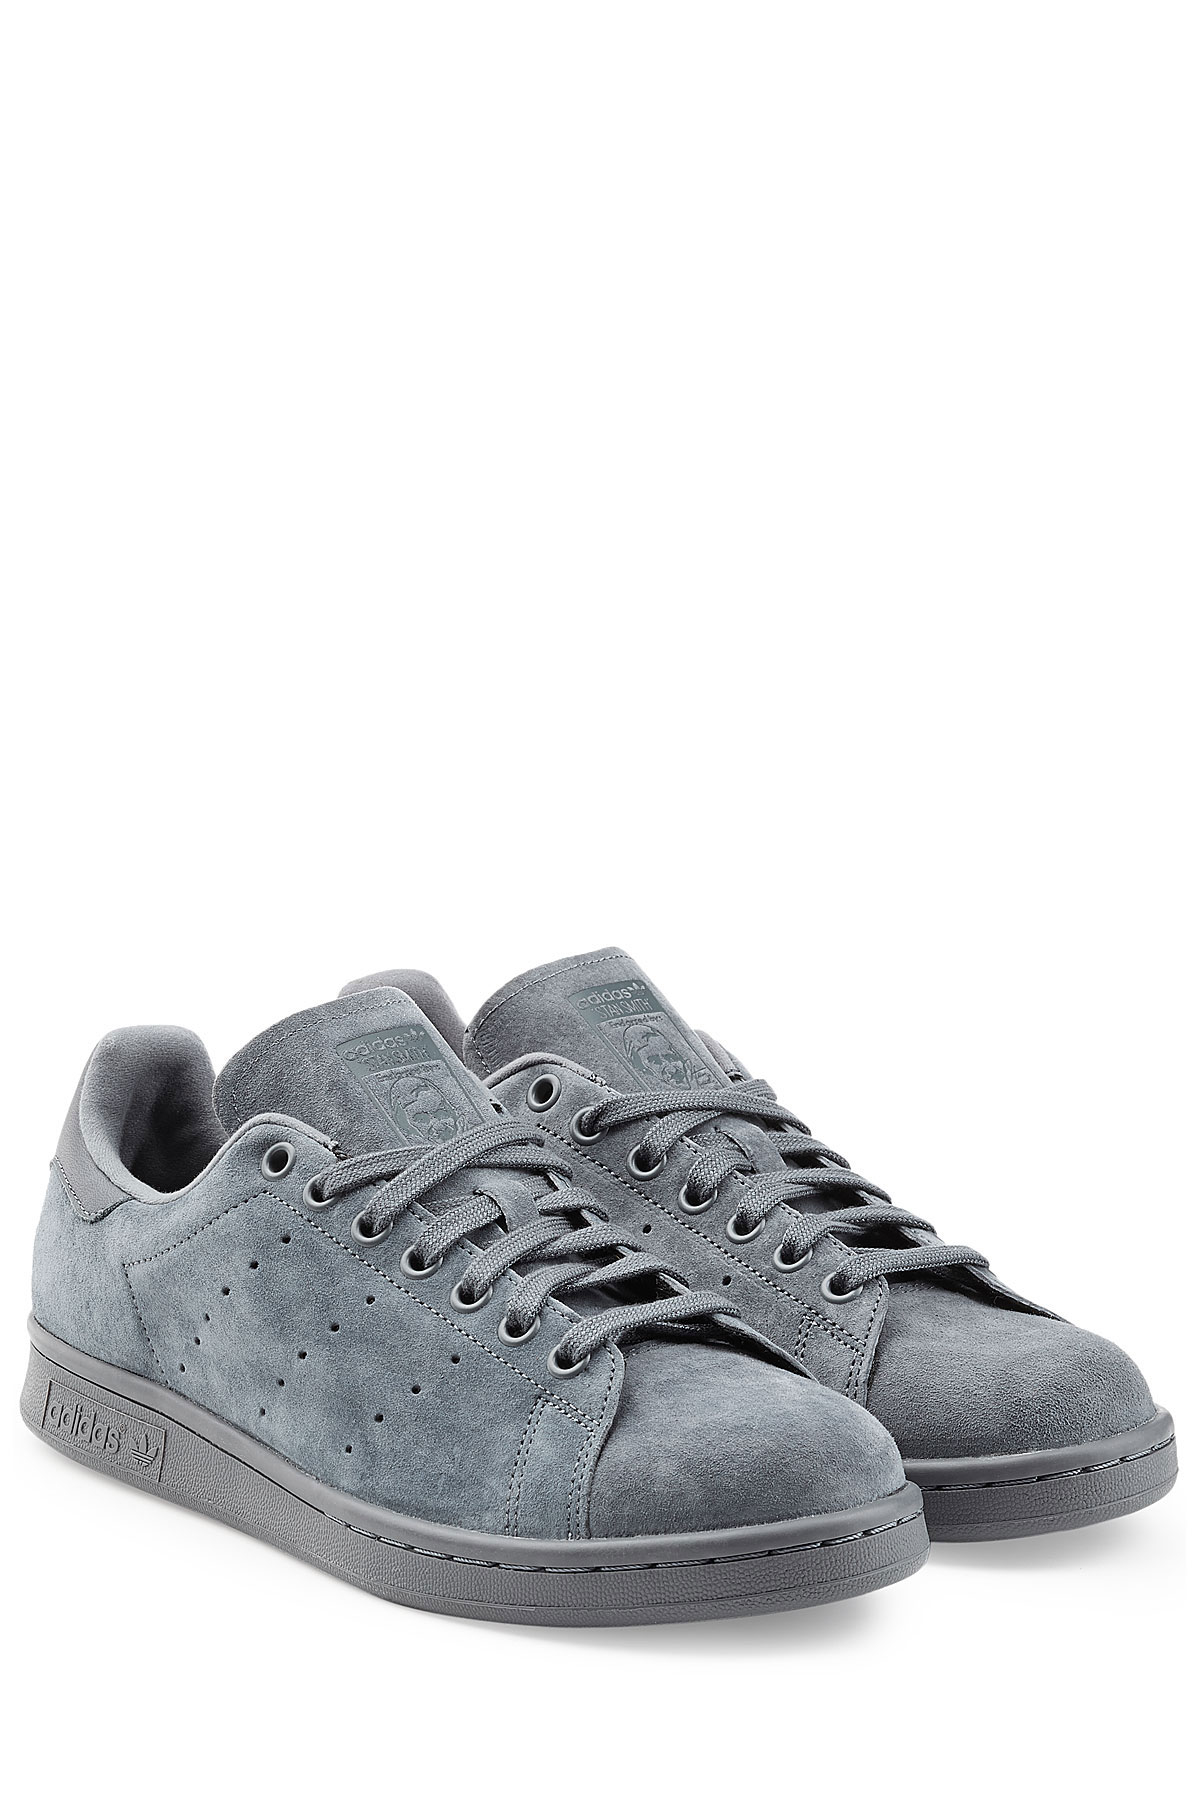 eae56a24a99e96 Lyst - adidas Originals Stan Smith Suede Sneakers - Blue in Blue for Men